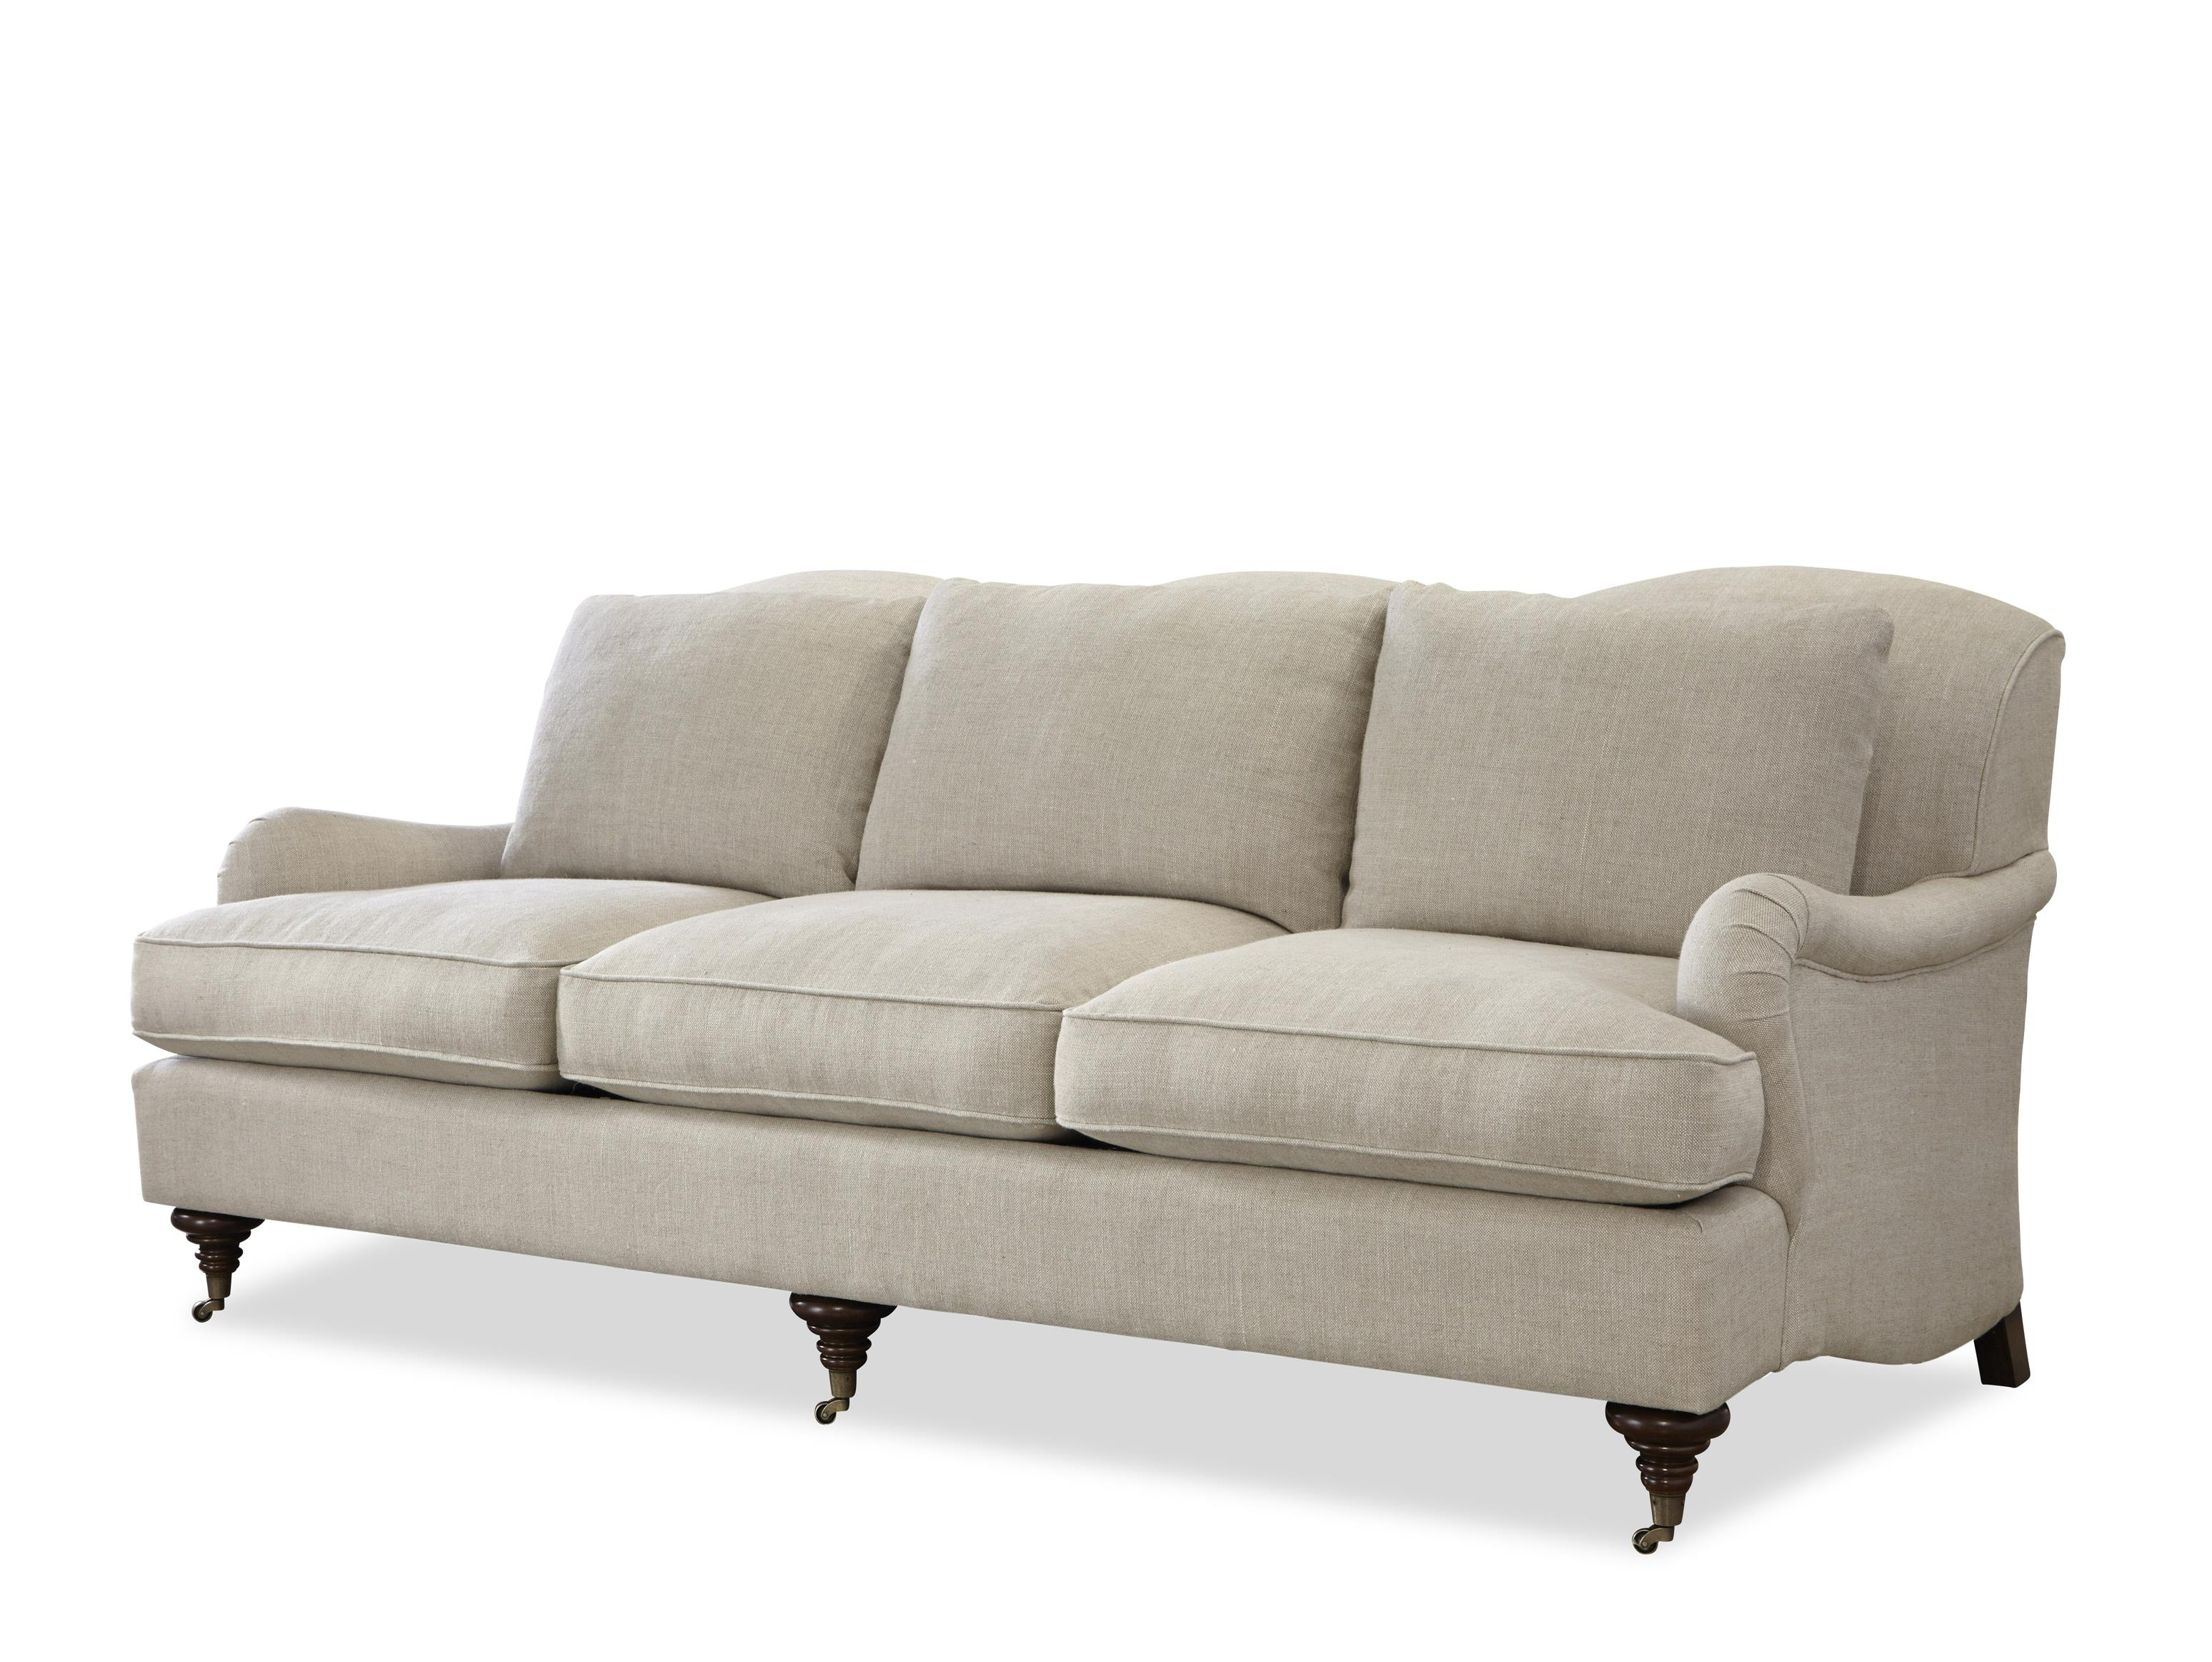 Churchill Stationary Sofa     by Universal at Baer's Furniture